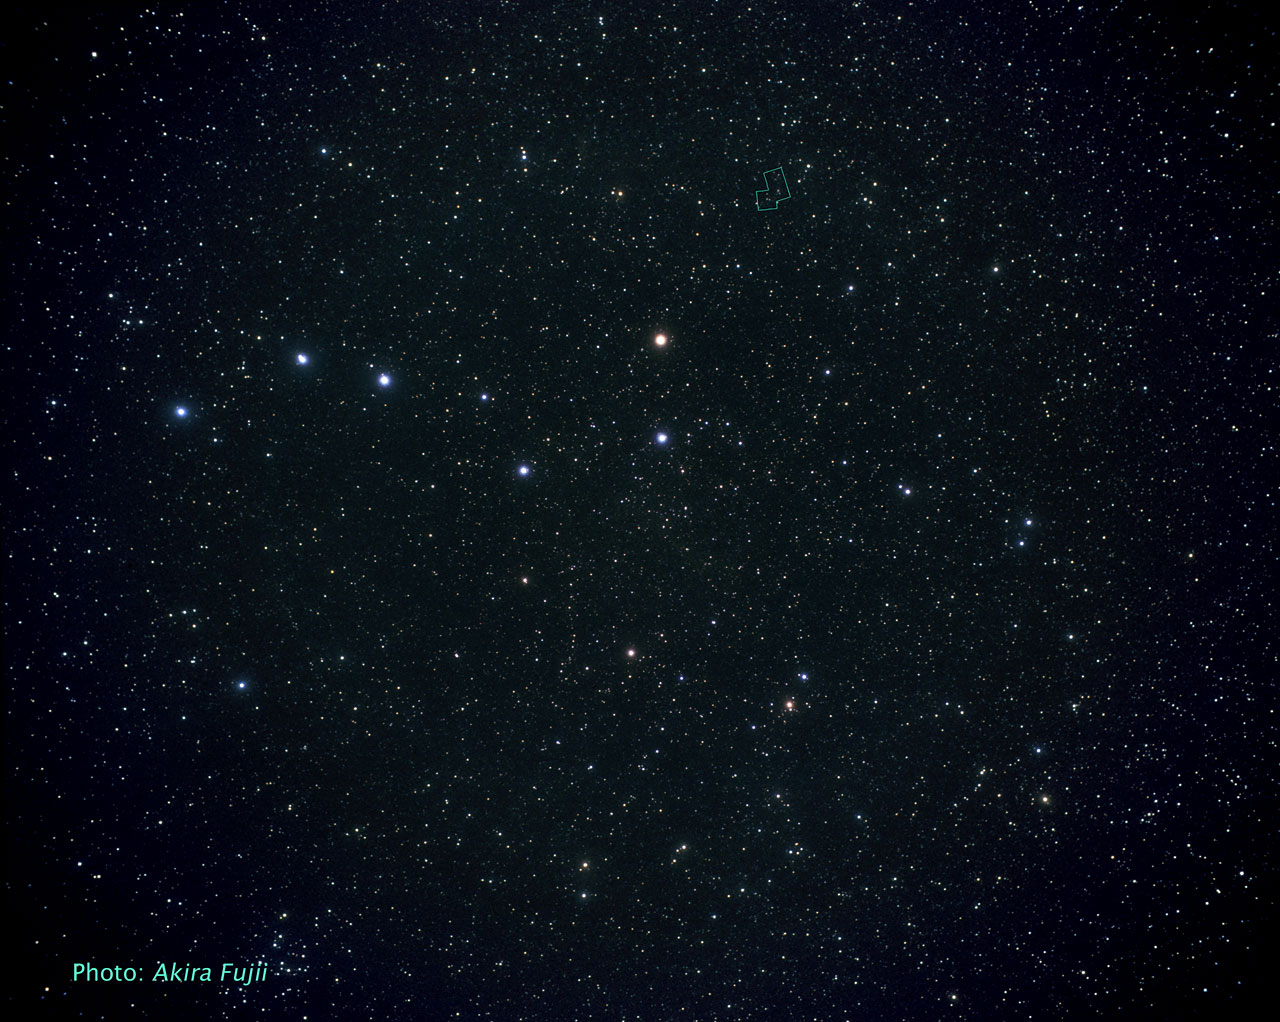 The Ursa Major constellation (ground-based image)